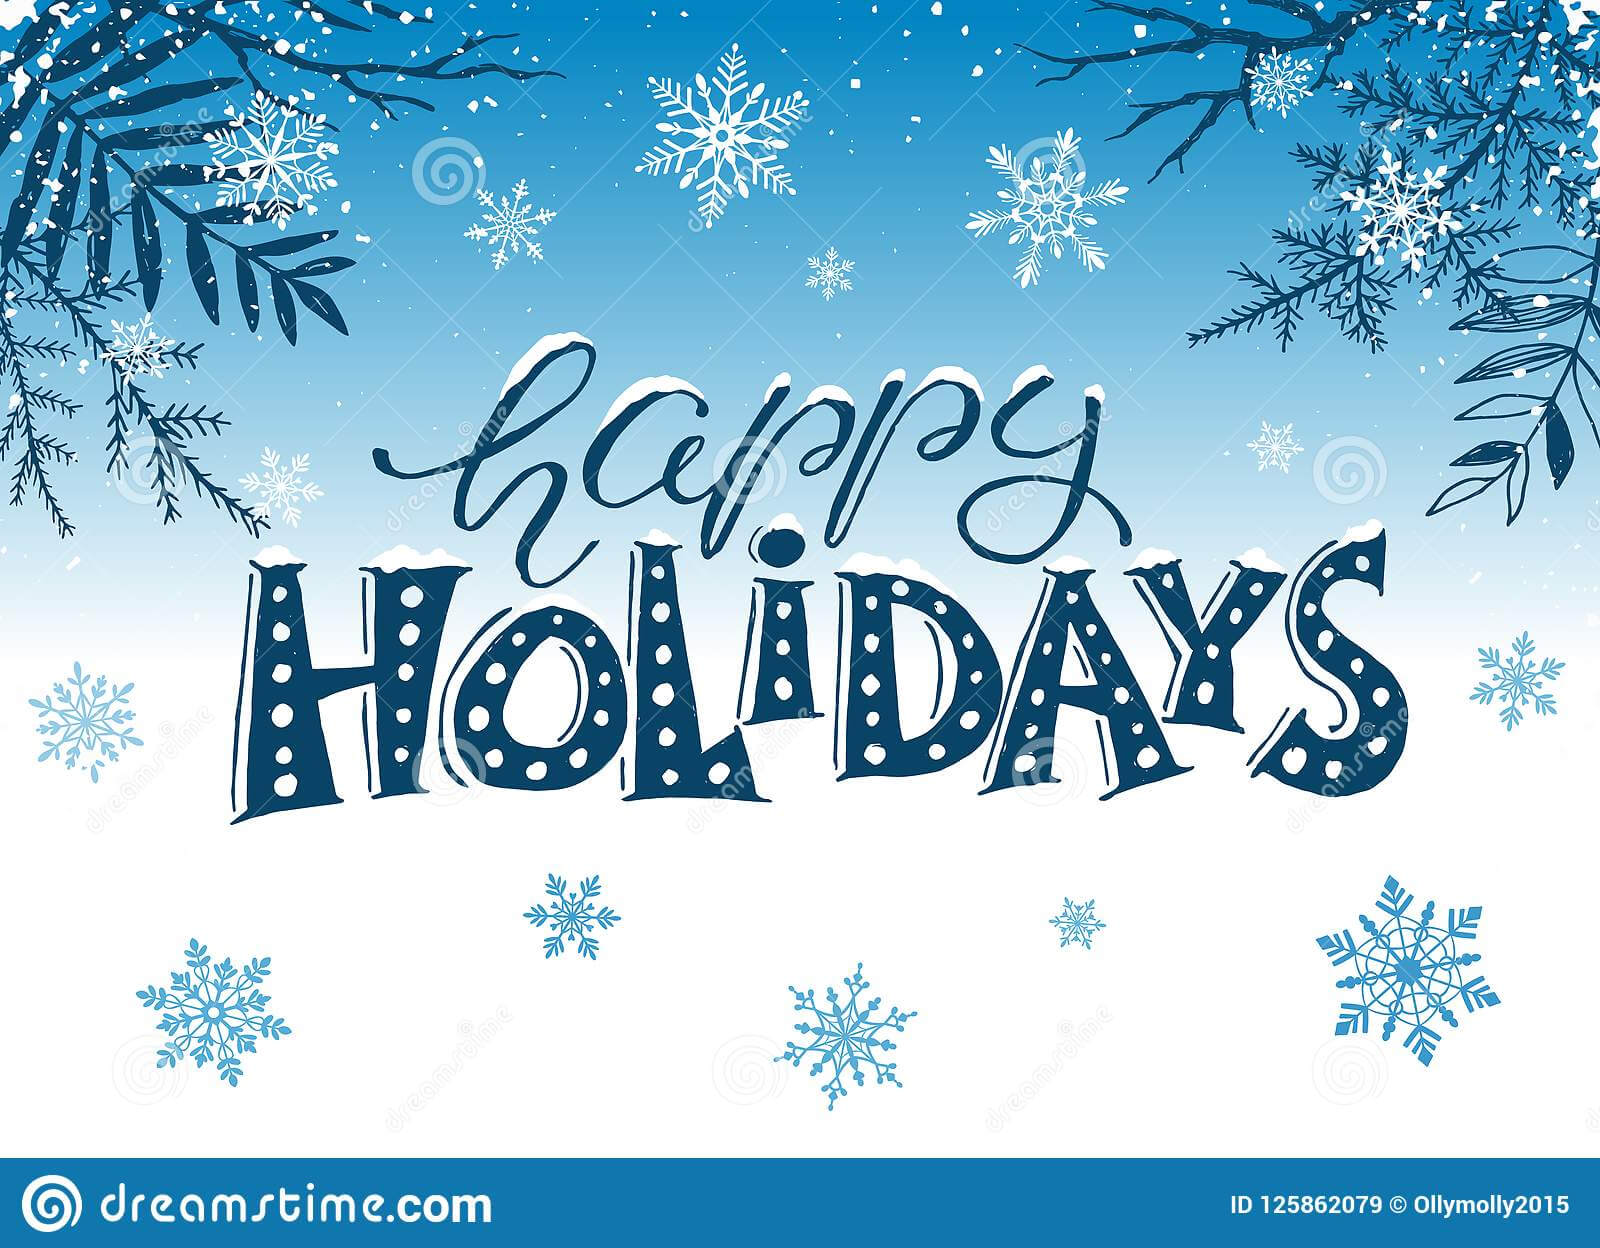 Happy Holidays Greeting Card Stock Vector – Illustration Of Intended For Happy Holidays Card Template